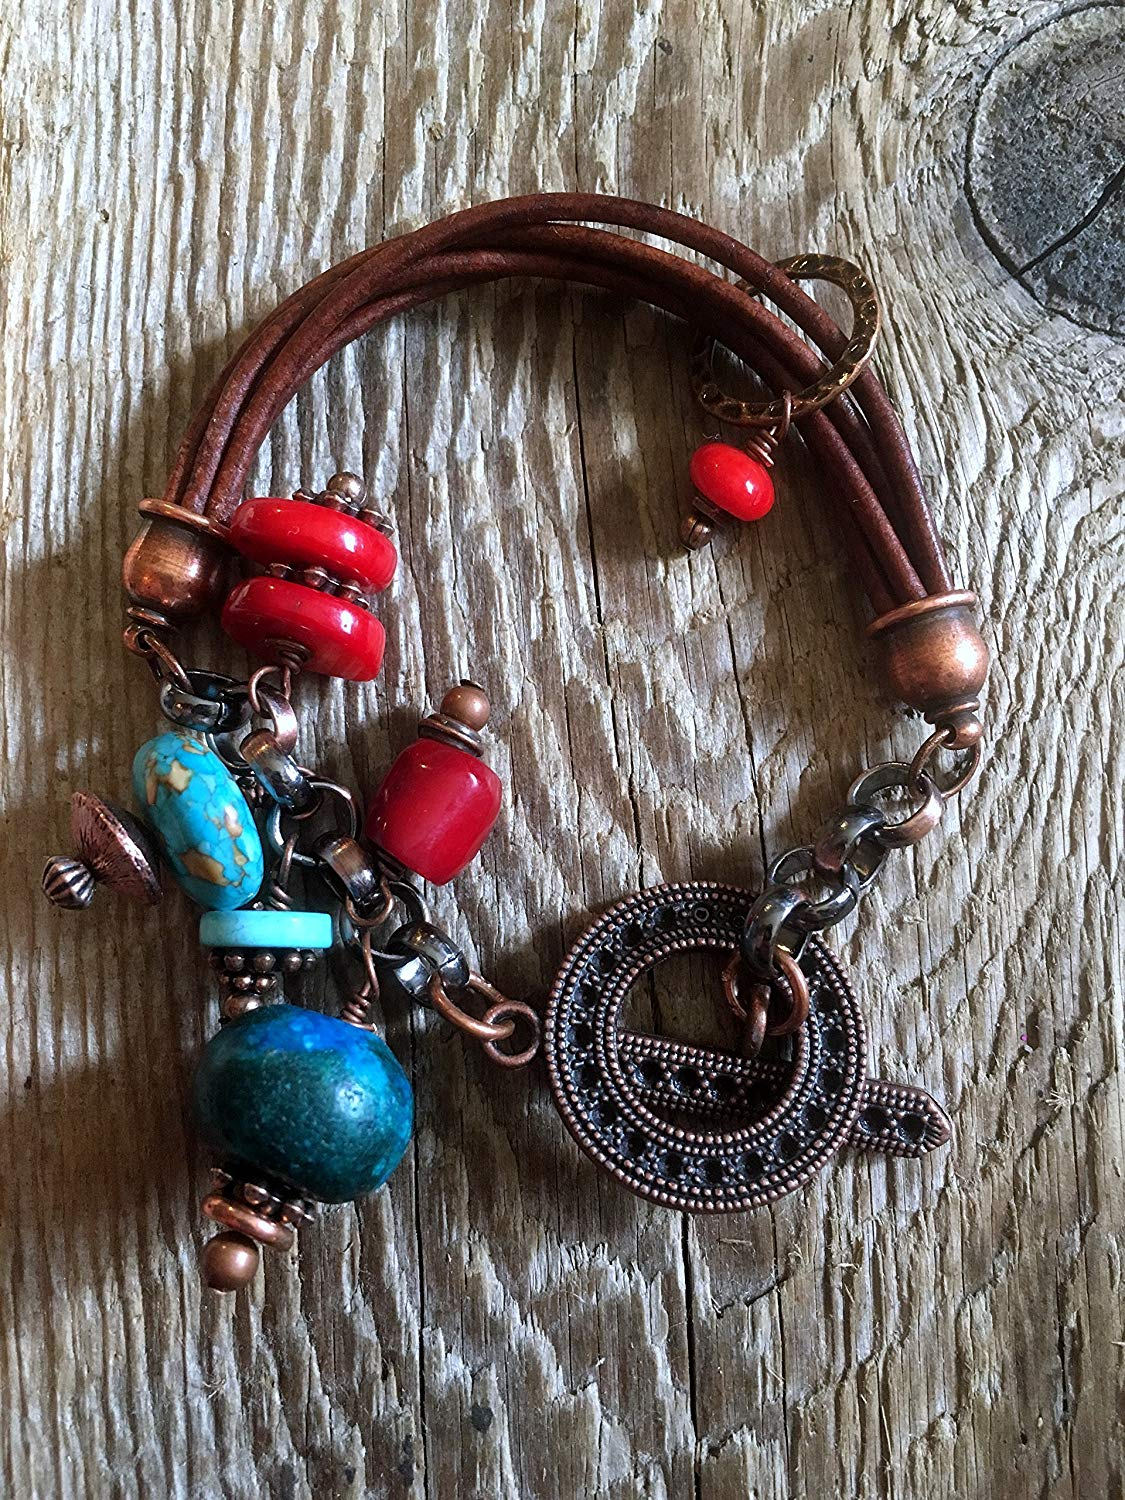 Boho Turquoise Bracelet/02 Mixed Media of Turquoise, Copper, Red Coral and Natural Hand Tanned Leather with an Antique Copper Large Toggle Clasp.